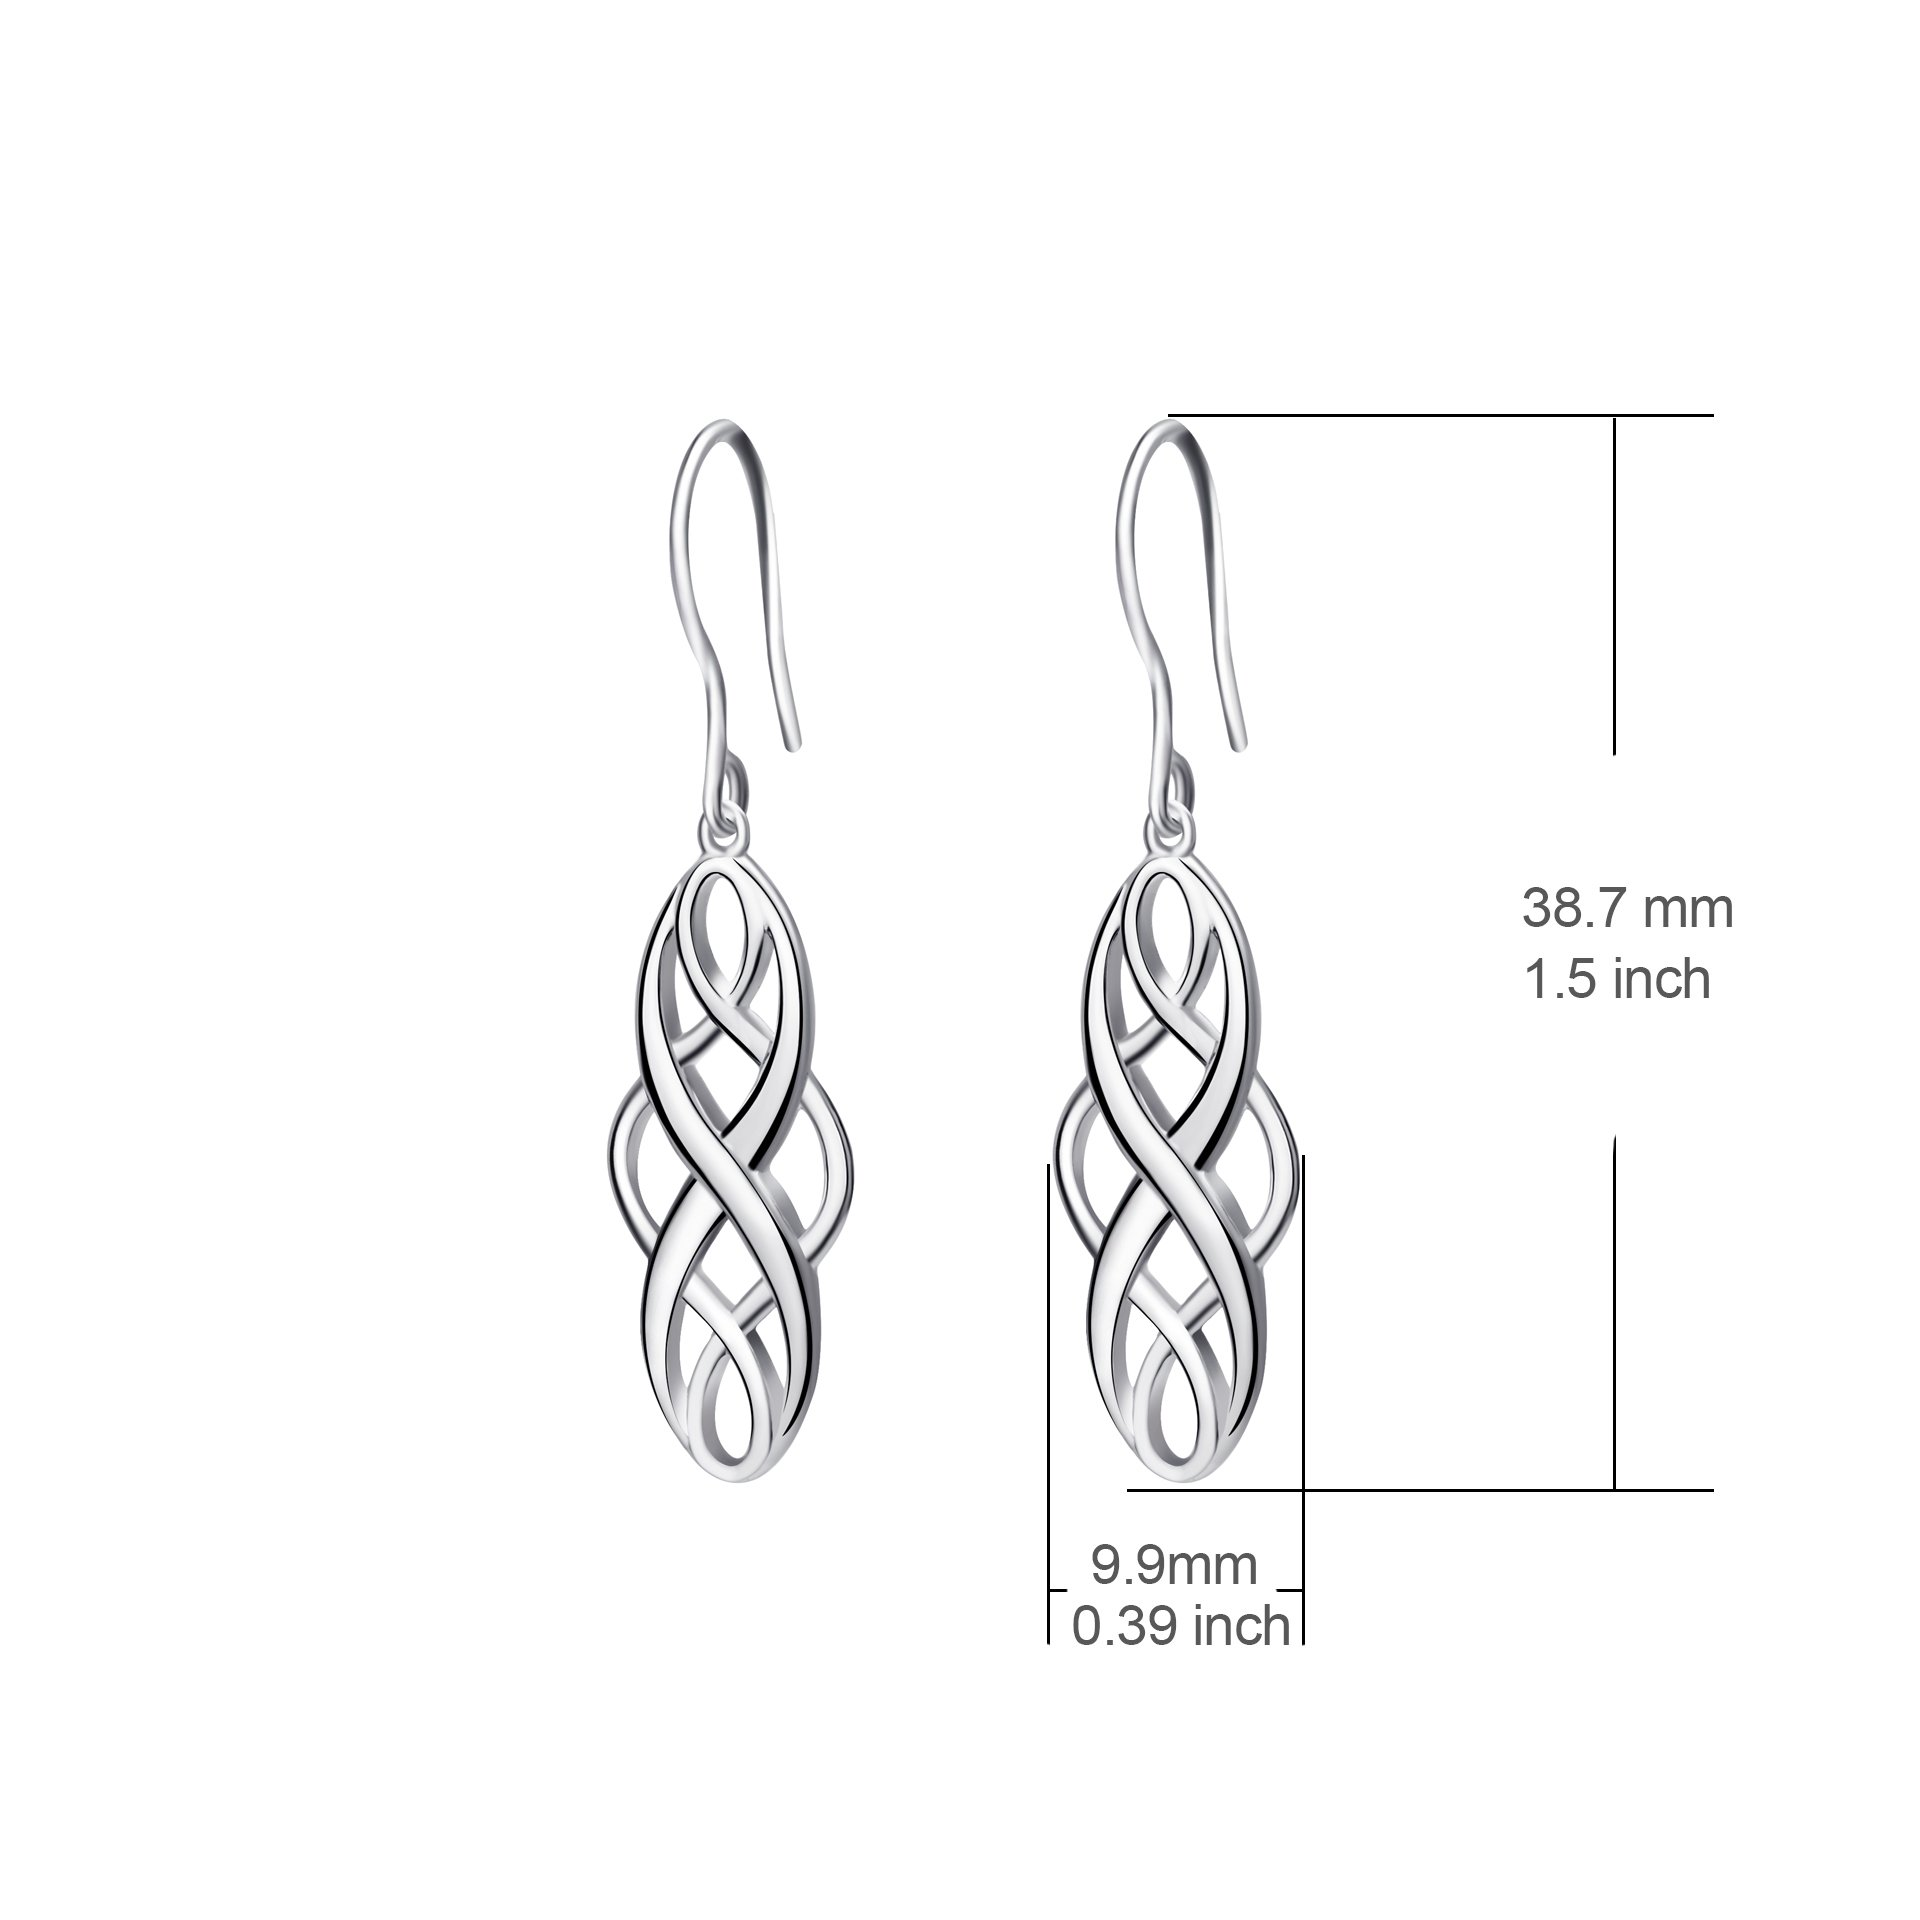 S925 Silver Earrings Solid Sterling Silver Polished Good Luck Irish Celtic Knot Vintage Dangles (Platinum) by Angel caller (Image #3)